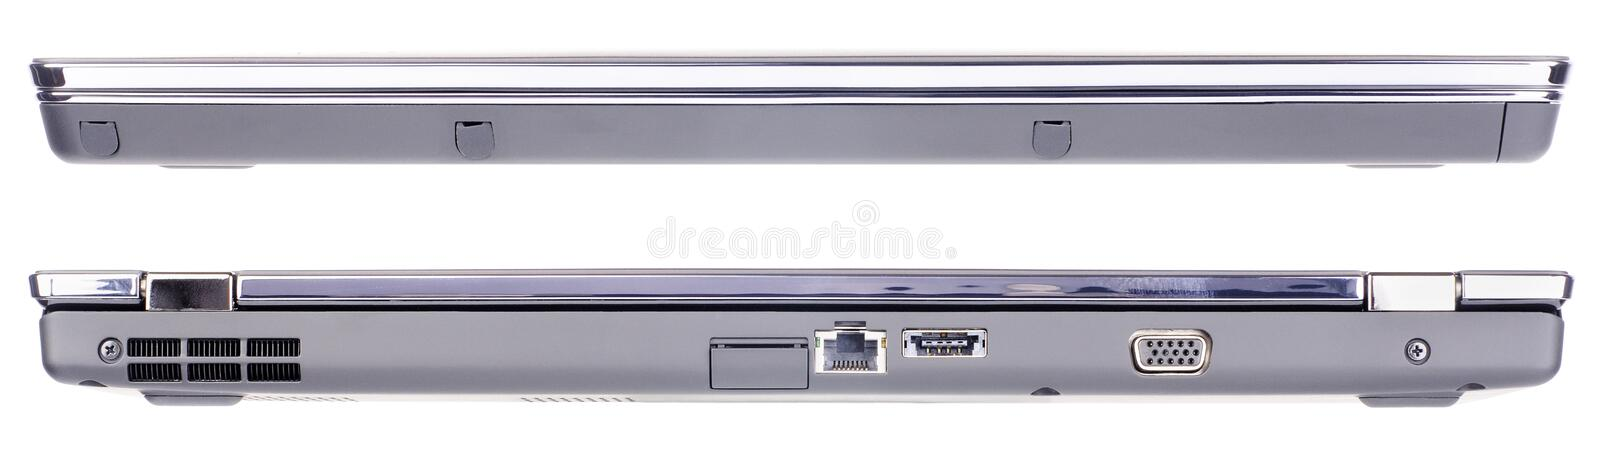 Laptop Isolated Front And Rear View Stock Photo